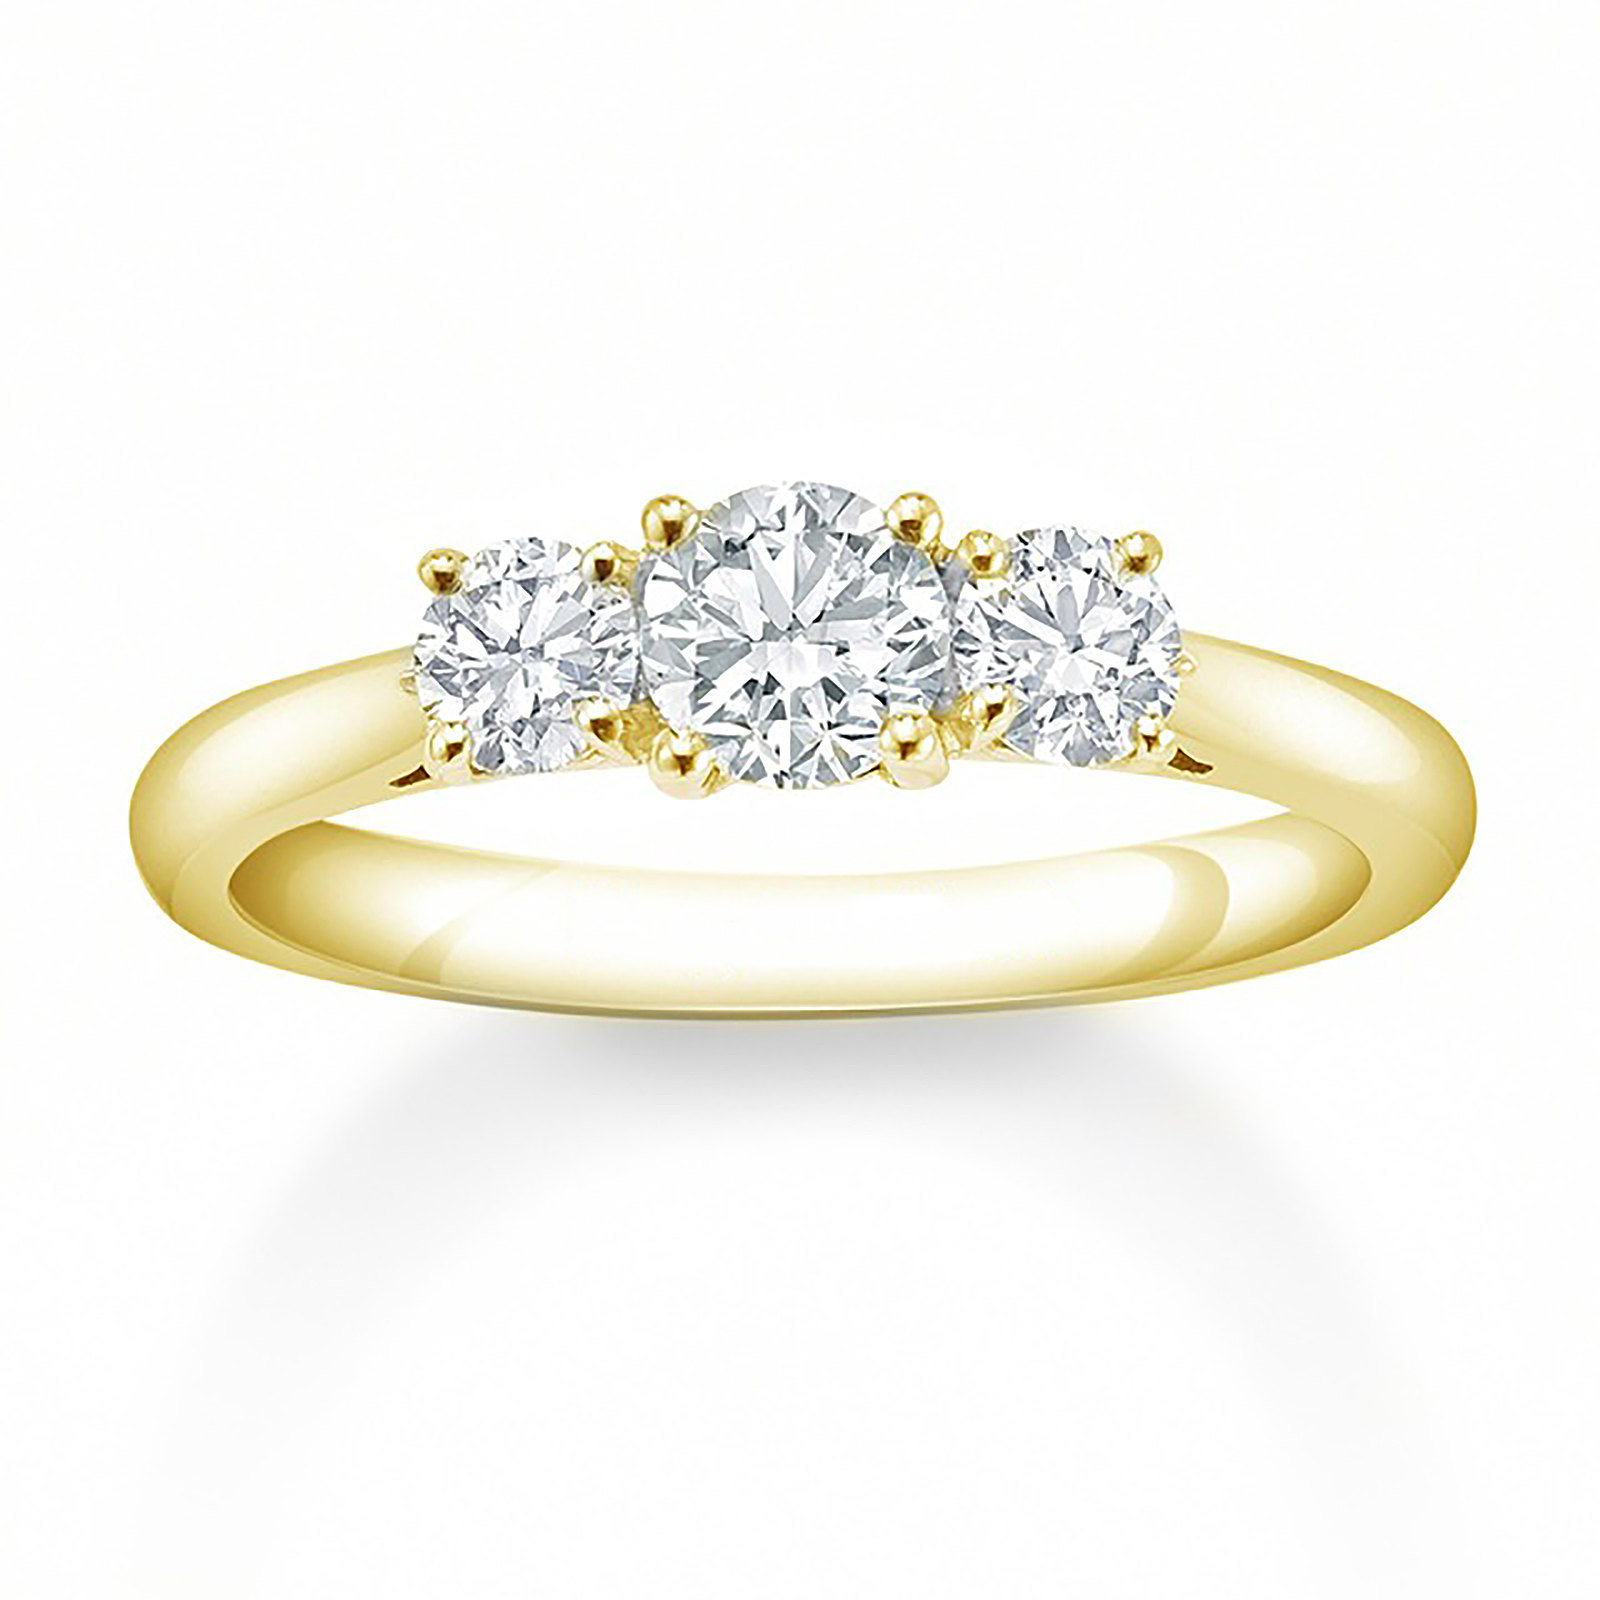 boucheron ring baguette rings diamond emerald yellow tapered jewelry and cut engagement gold